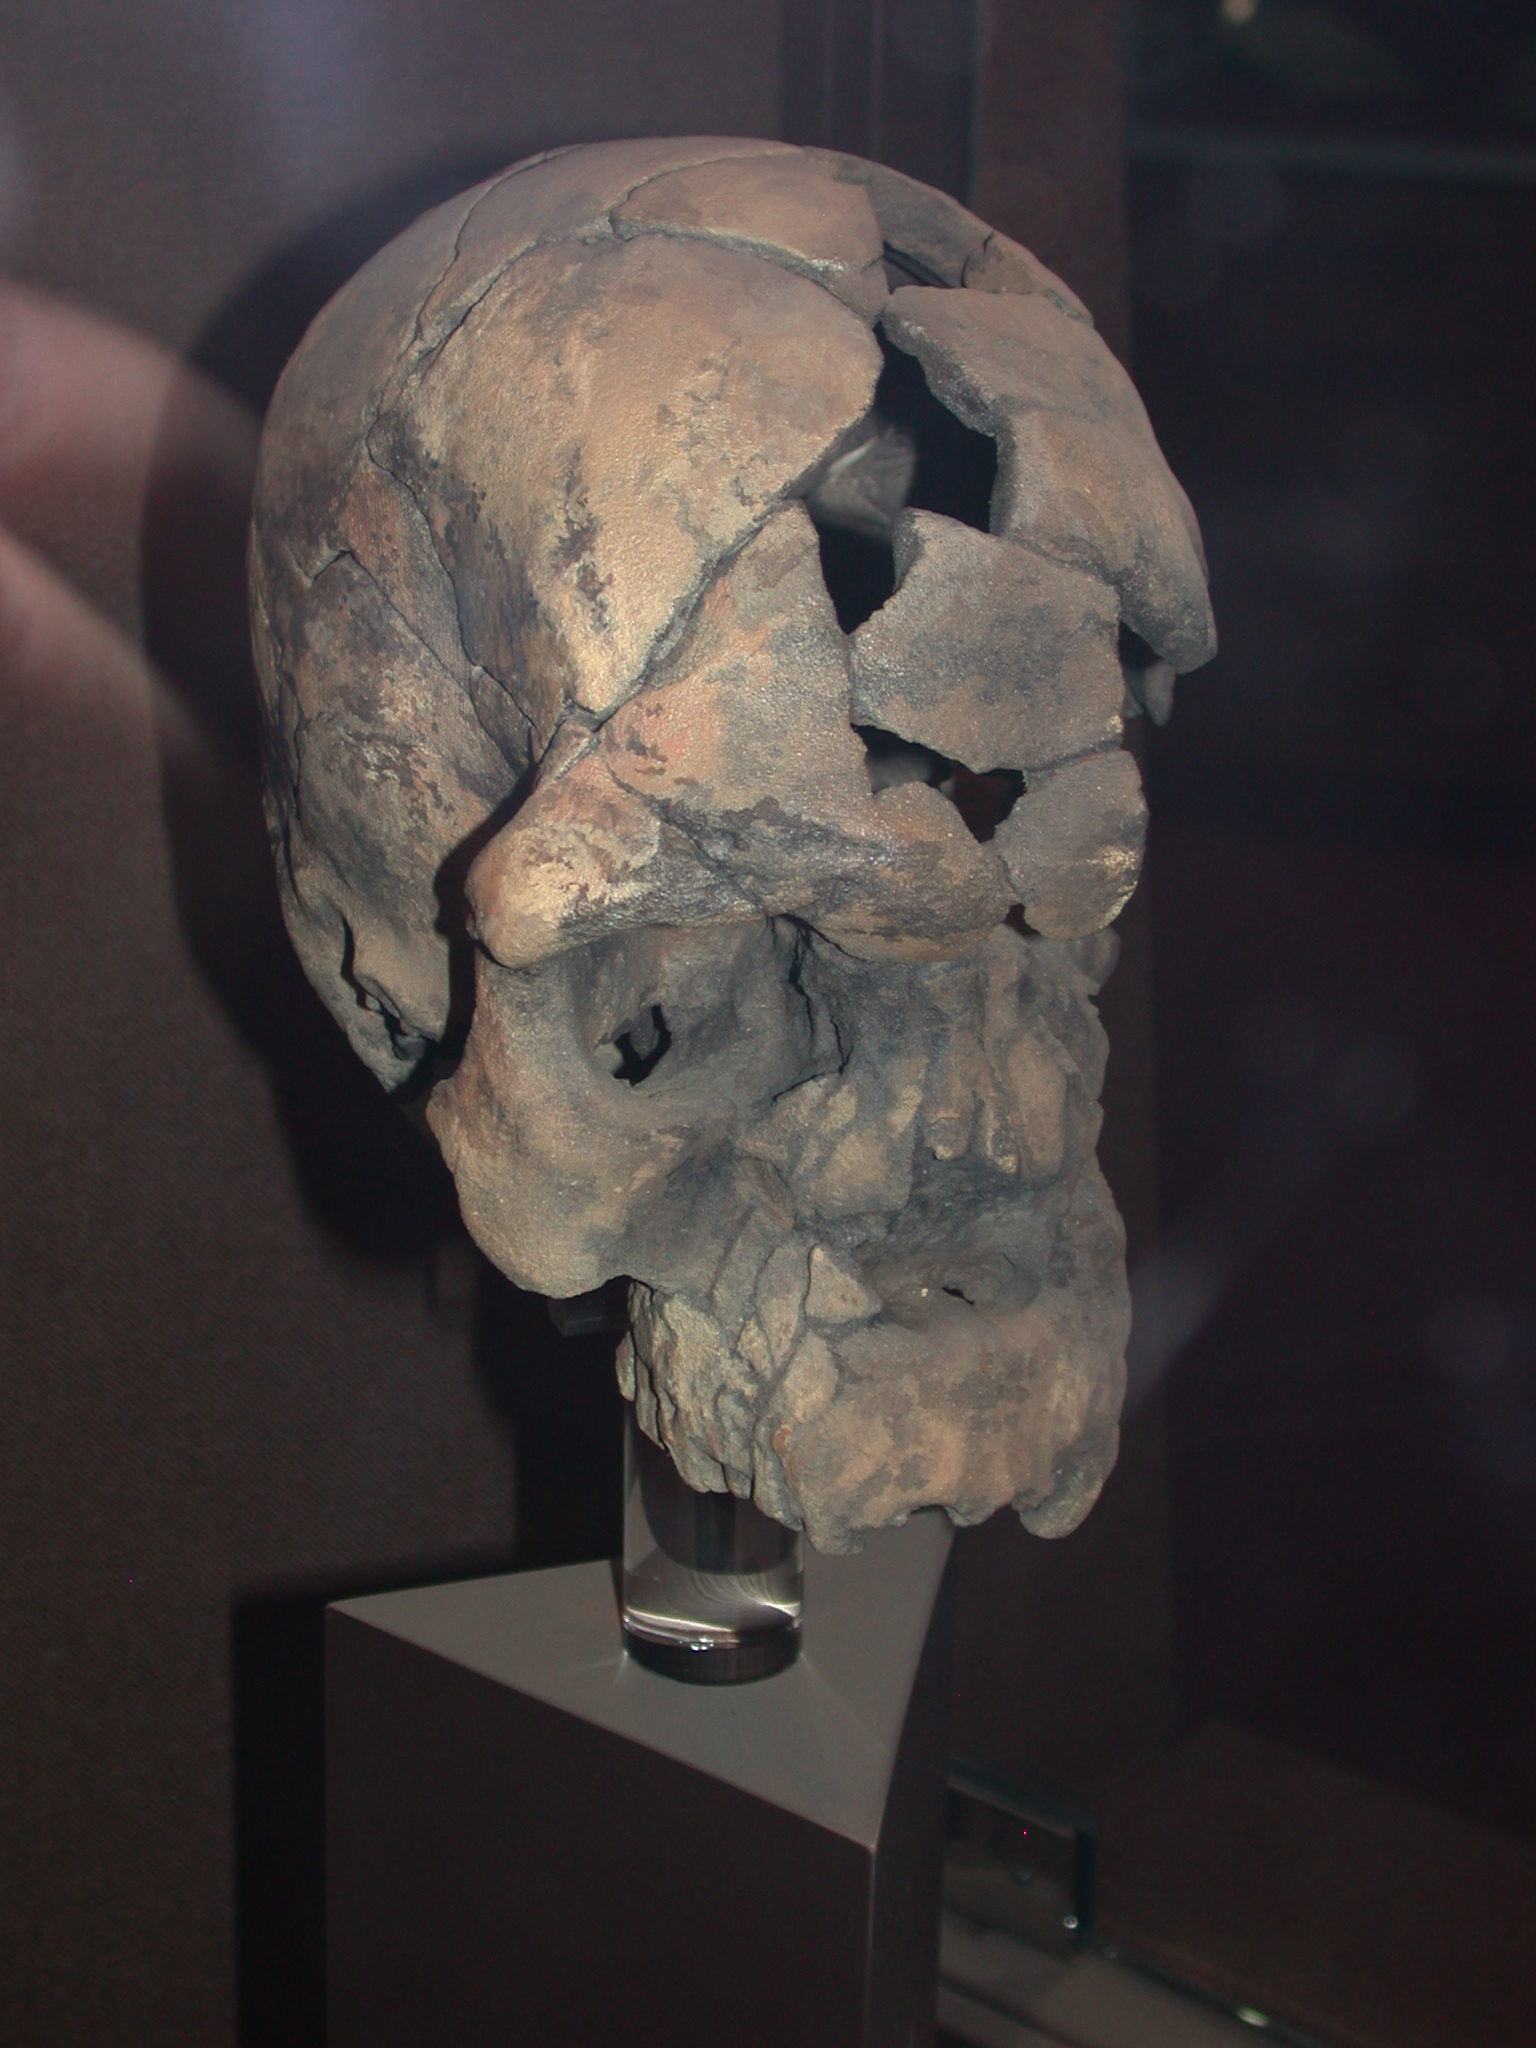 Herto Idaltu Skull Replica View 3, National Museum, Addis Ababa, Ethiopia